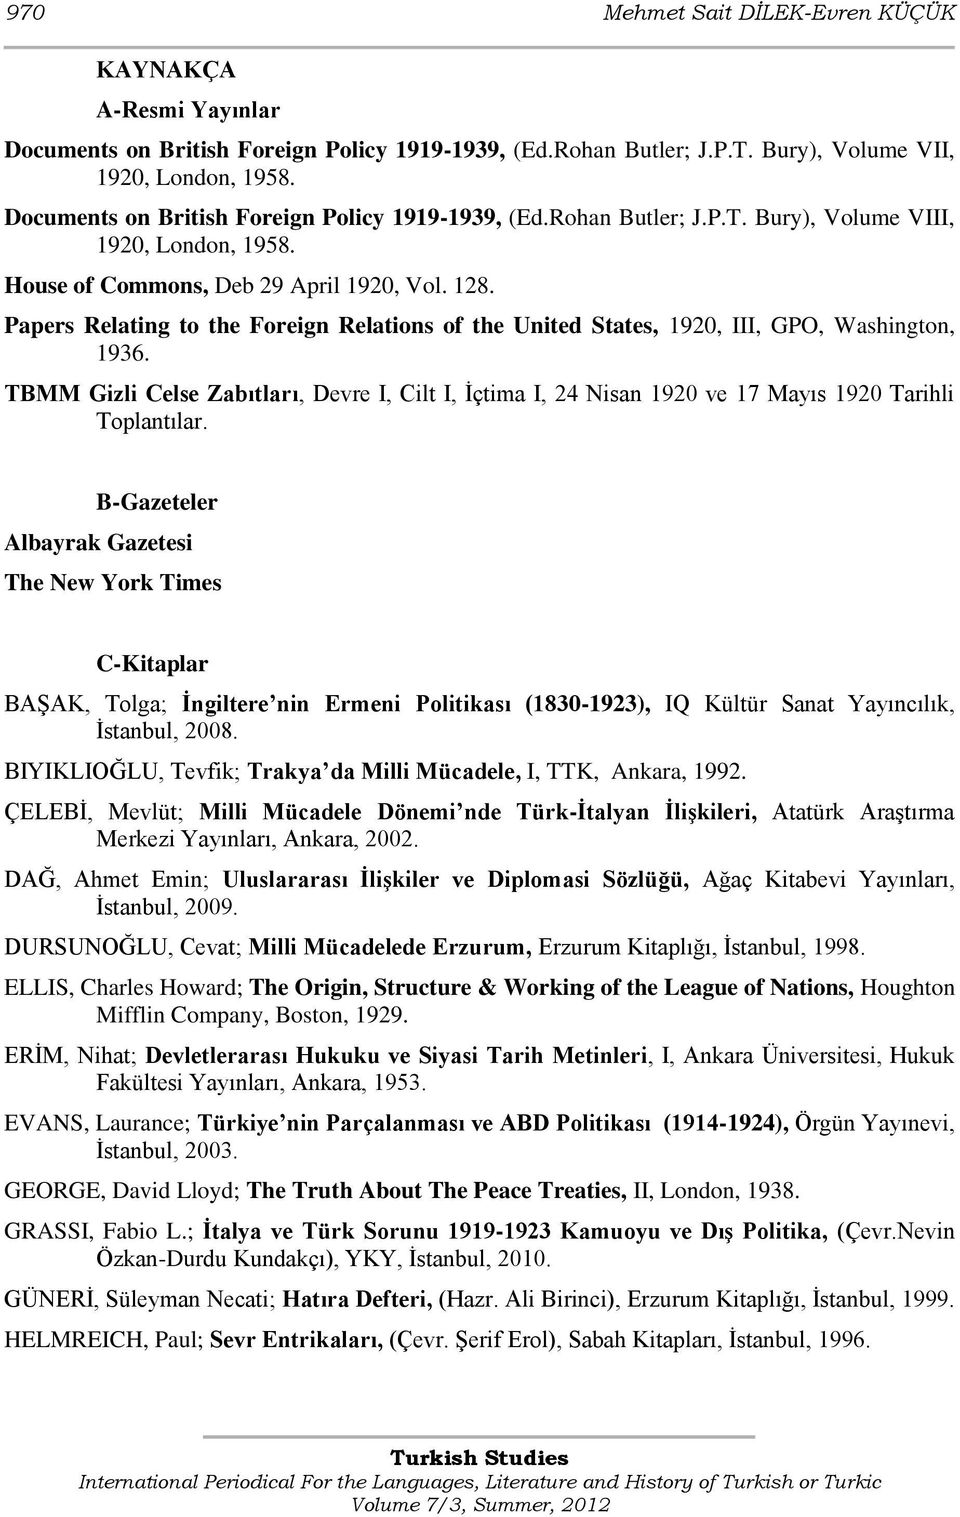 Papers Relating to the Foreign Relations of the United States, 1920, III, GPO, Washington, 1936.